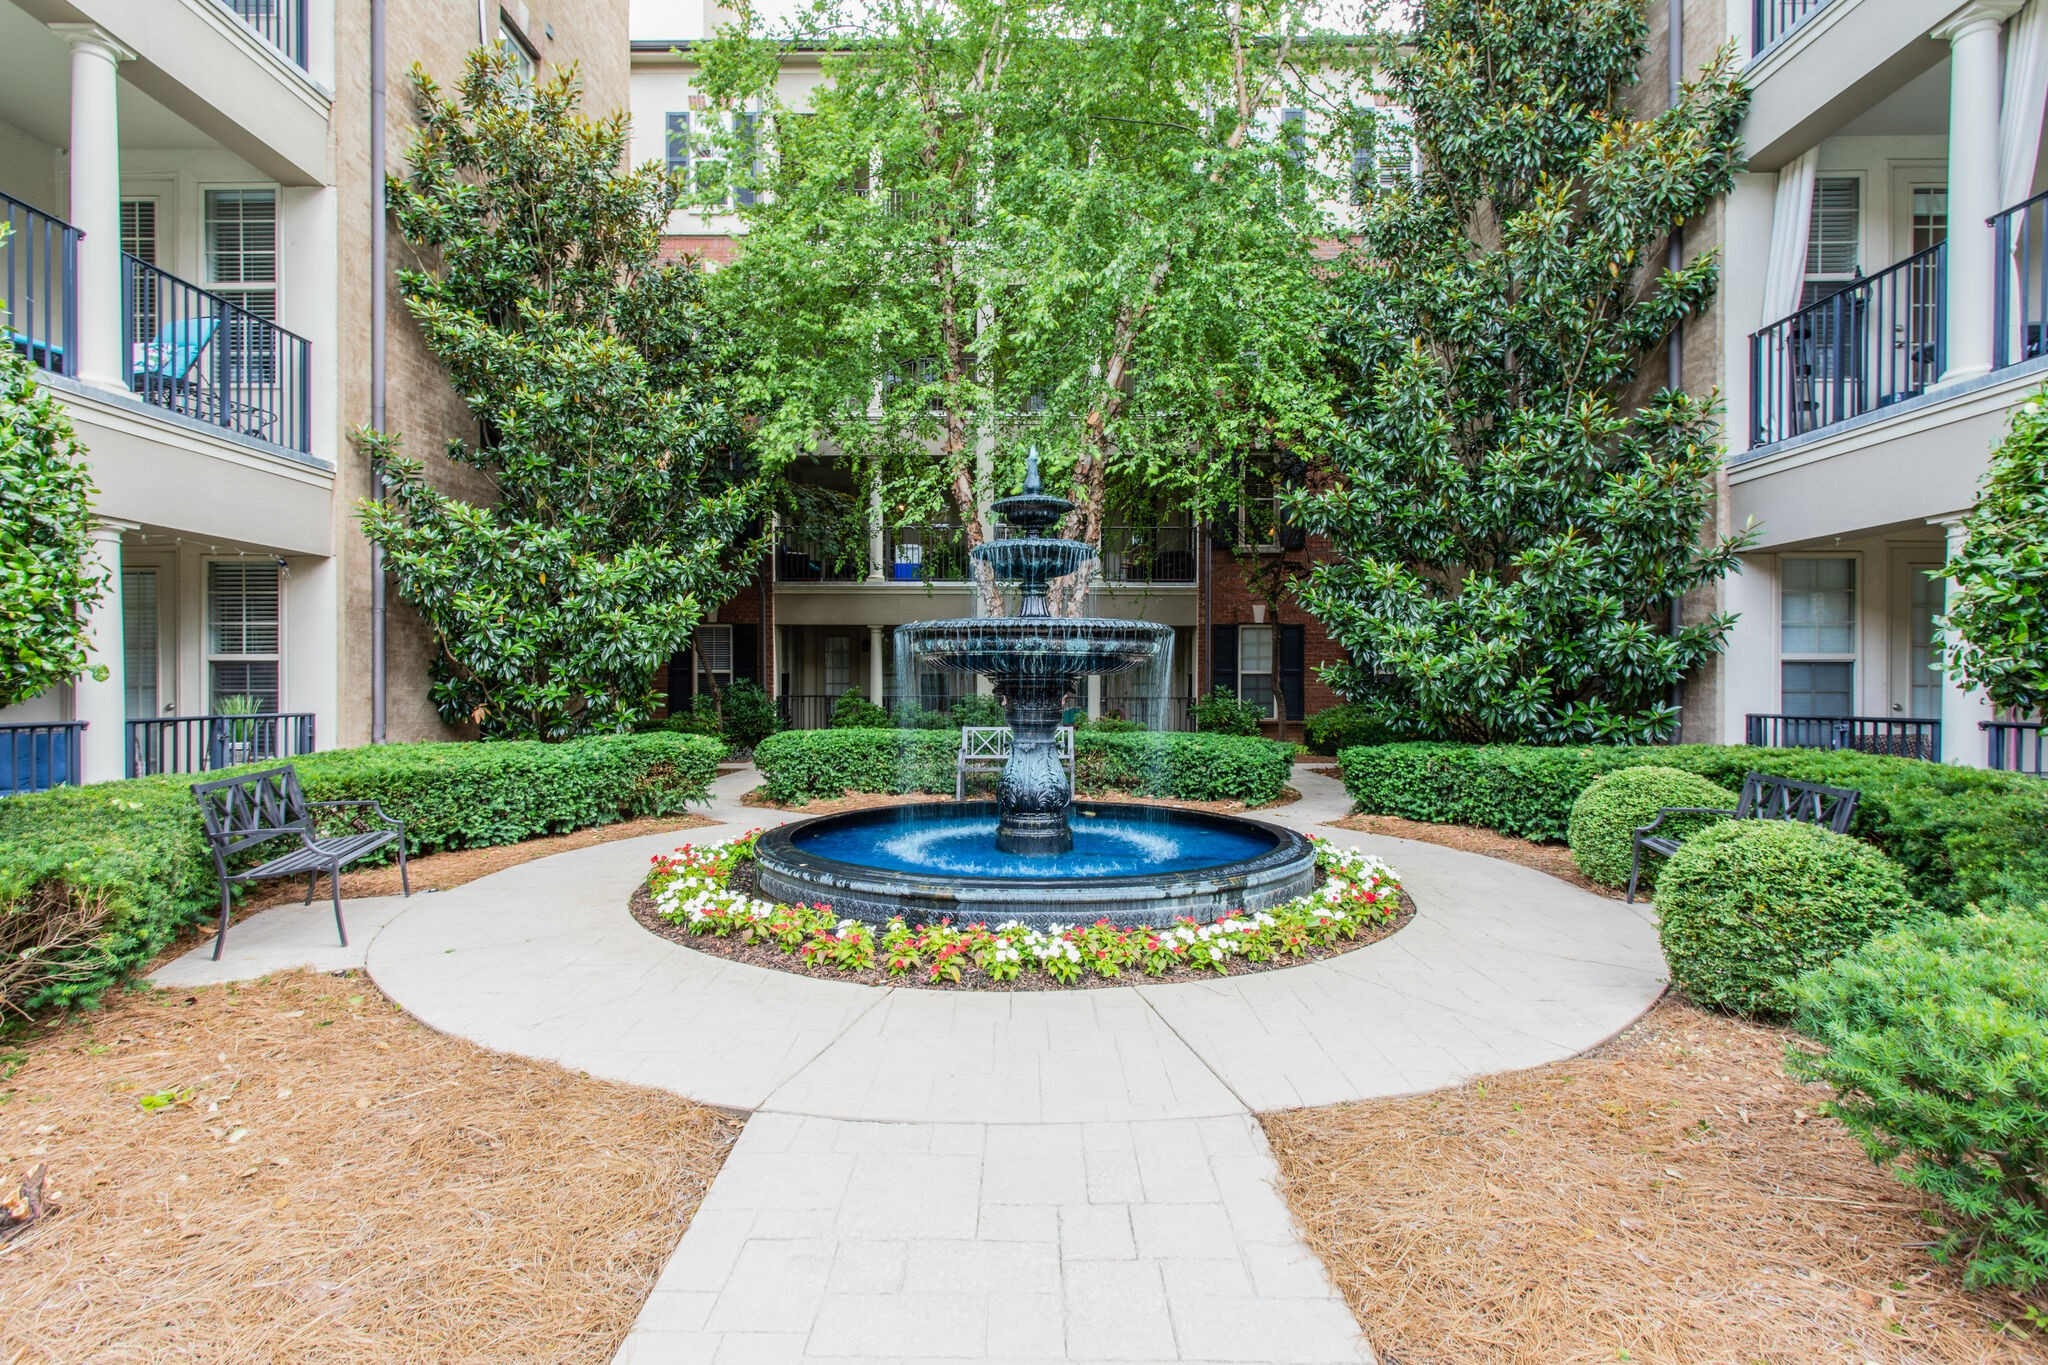 Best unit location in the building! Ground level condo, near the pool and amenities, ideal parking, close to mailboxes. Fireplace, open living, amazing covered porch facing interior and well maintained over the years! Close to retail, interstates and more! HOA managed, beautiful development.